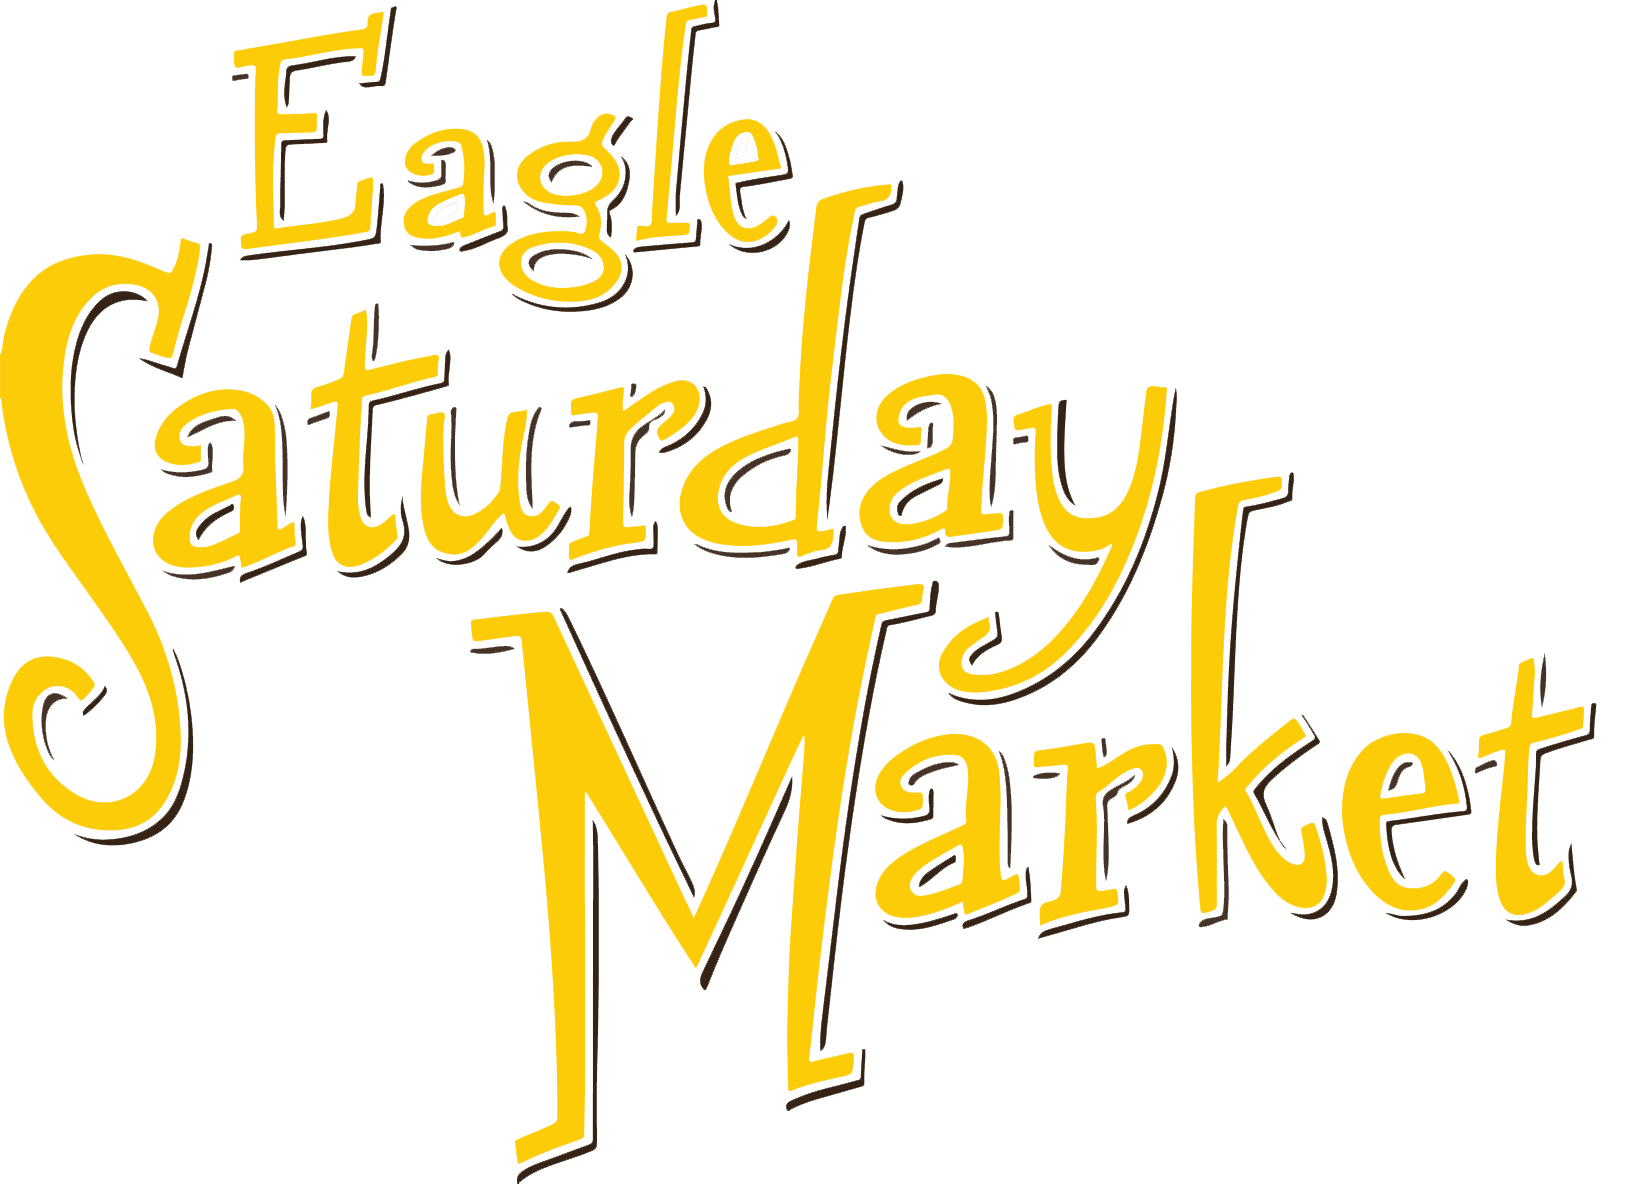 Eagle Saturday Market logo in yellow